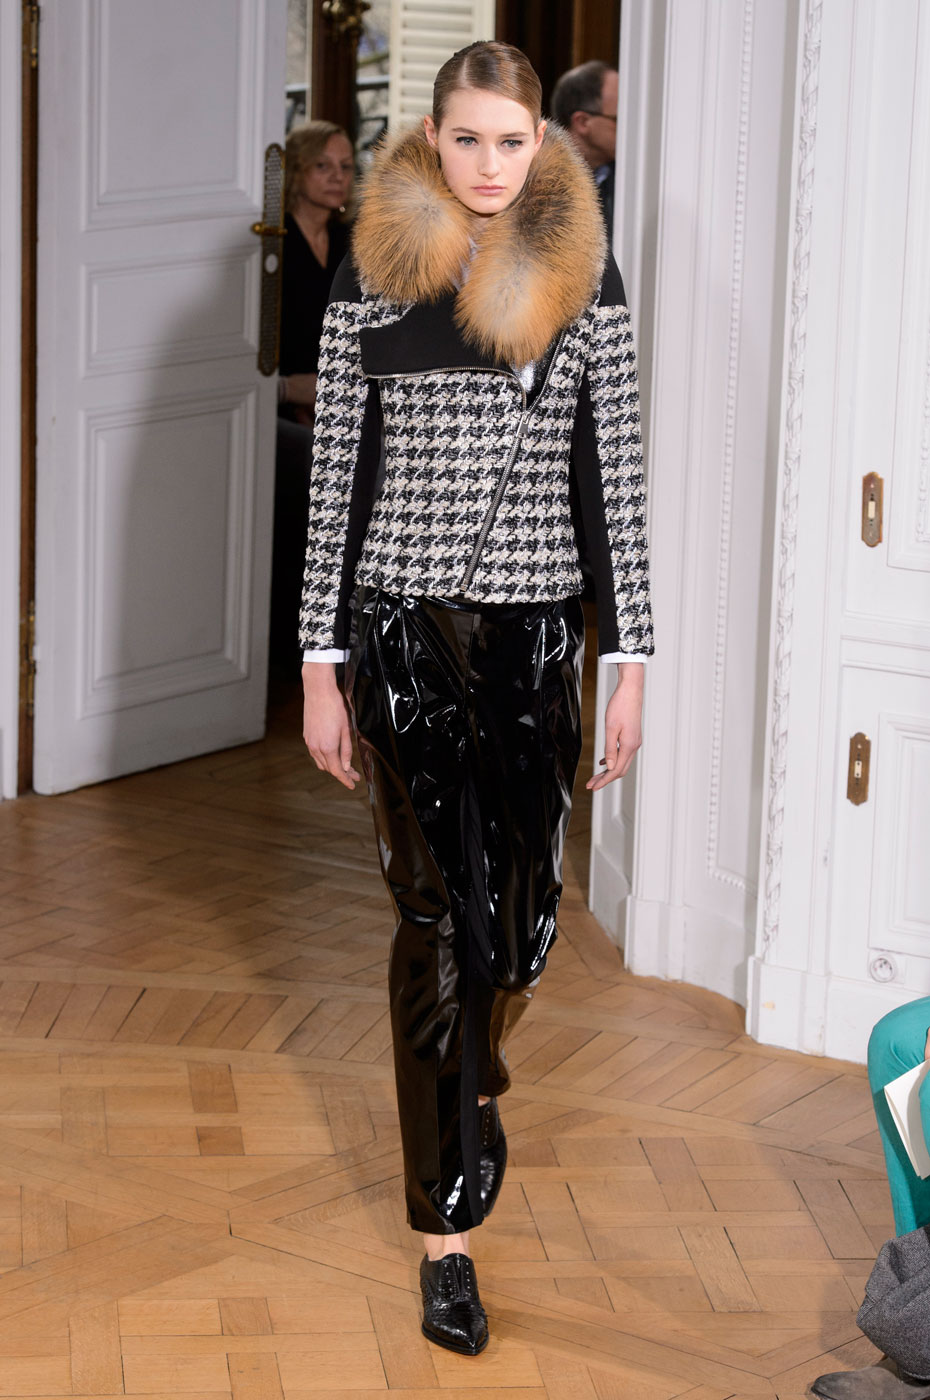 Bouchra-Jarrar-fashion-runway-show-haute-couture-paris-spring-summer-2015-the-impression-33